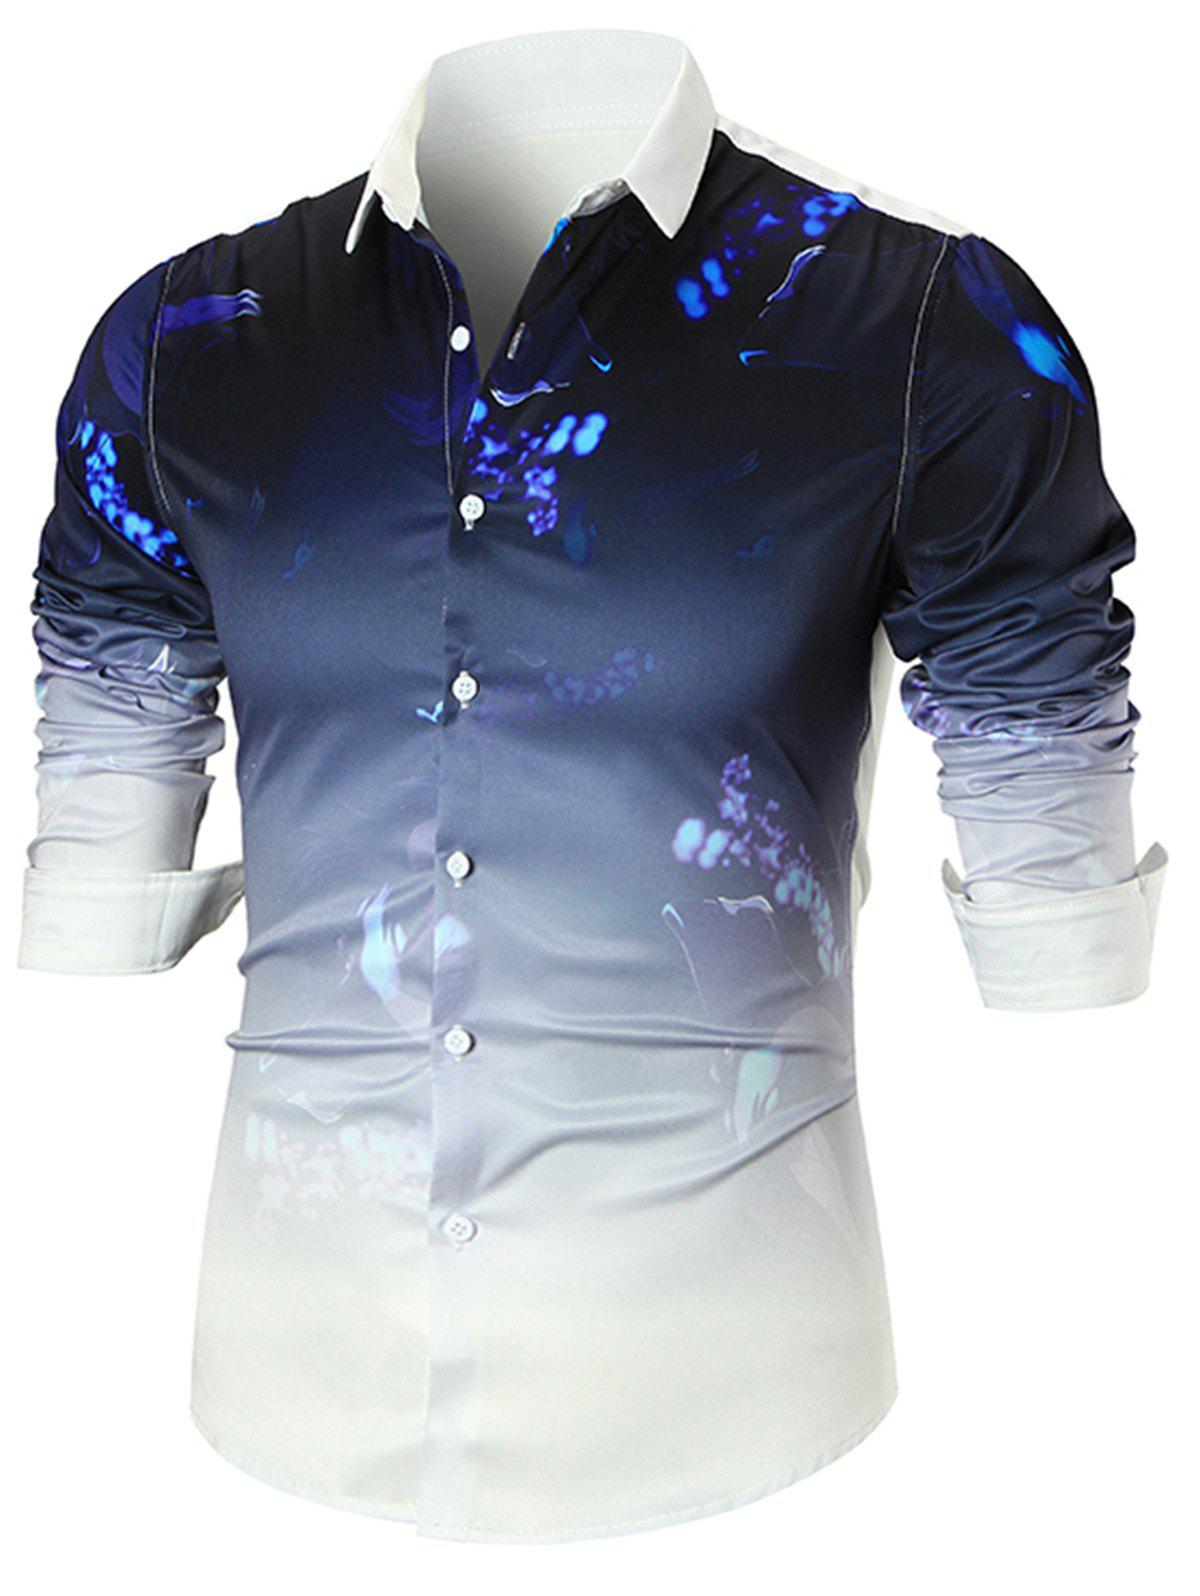 Paint Splatter Dip-dye Long Sleeve Shirt - WHITE XL